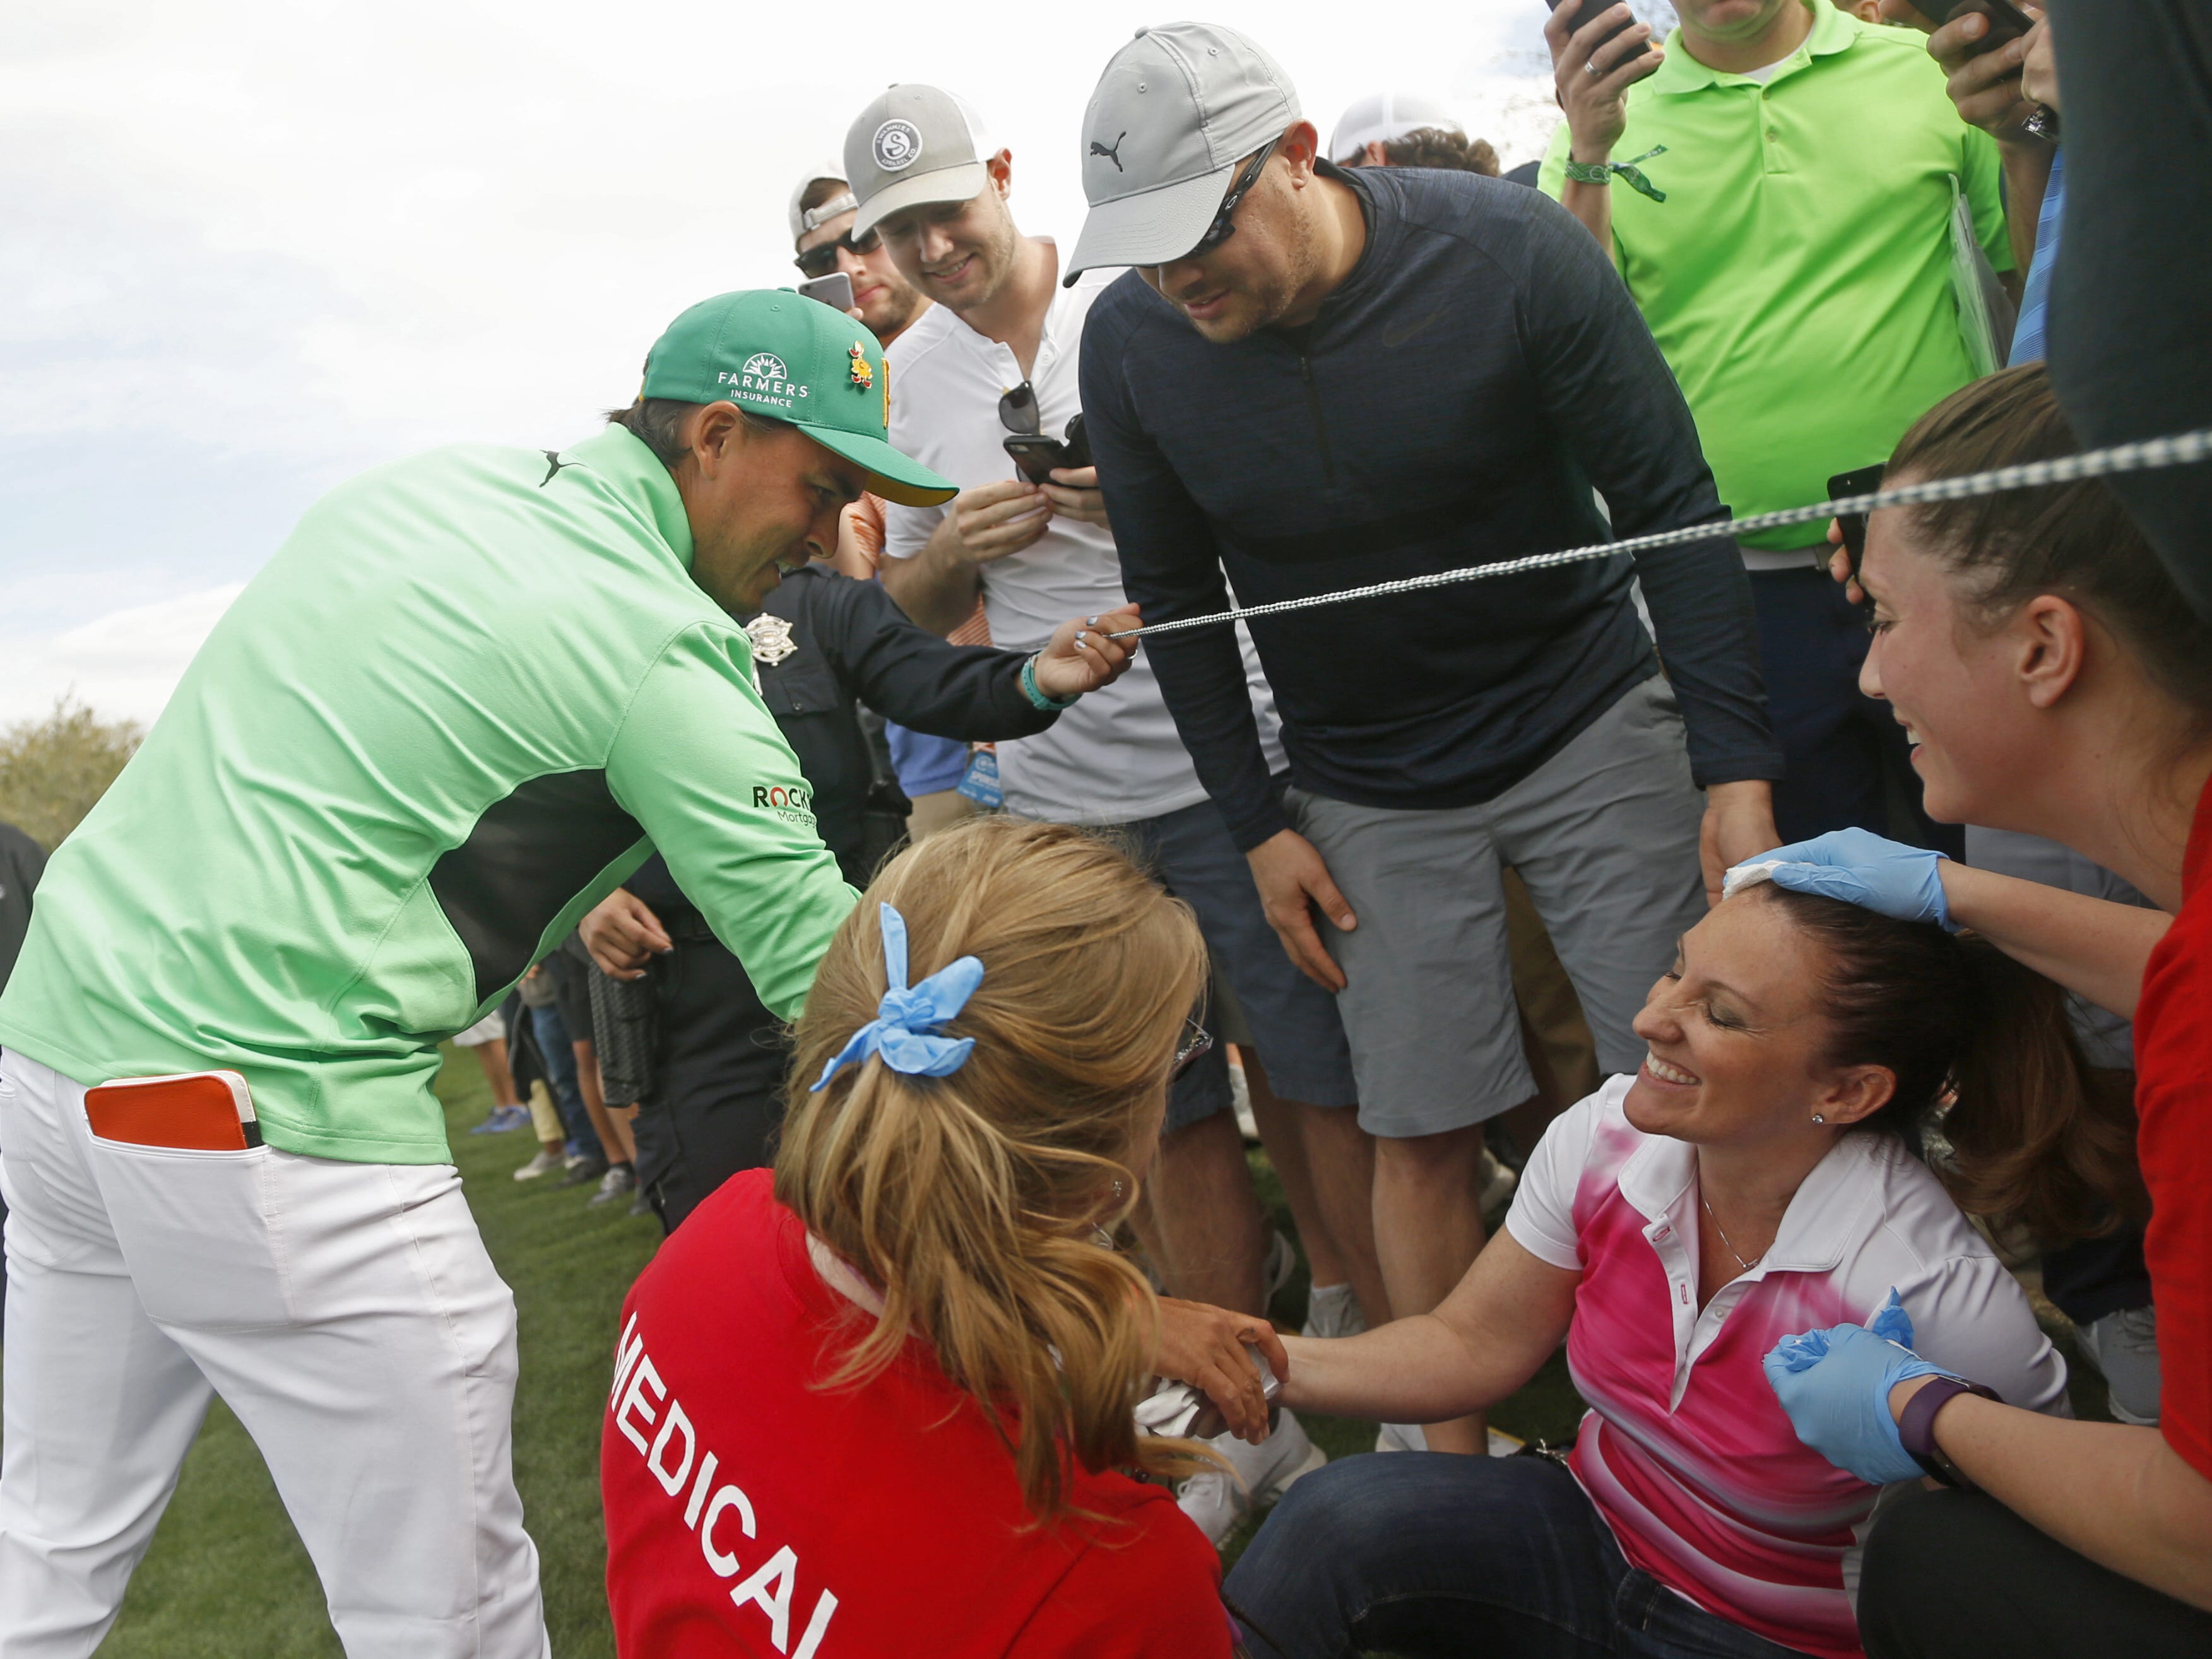 Rickie Fowler gives a glove to a fan who was hit with his ball in the head on the 15th hole during the third round of the Waste Management Phoenix Open at TPC Scottsdale in Scottsdale, Ariz. on February 2, 2019.